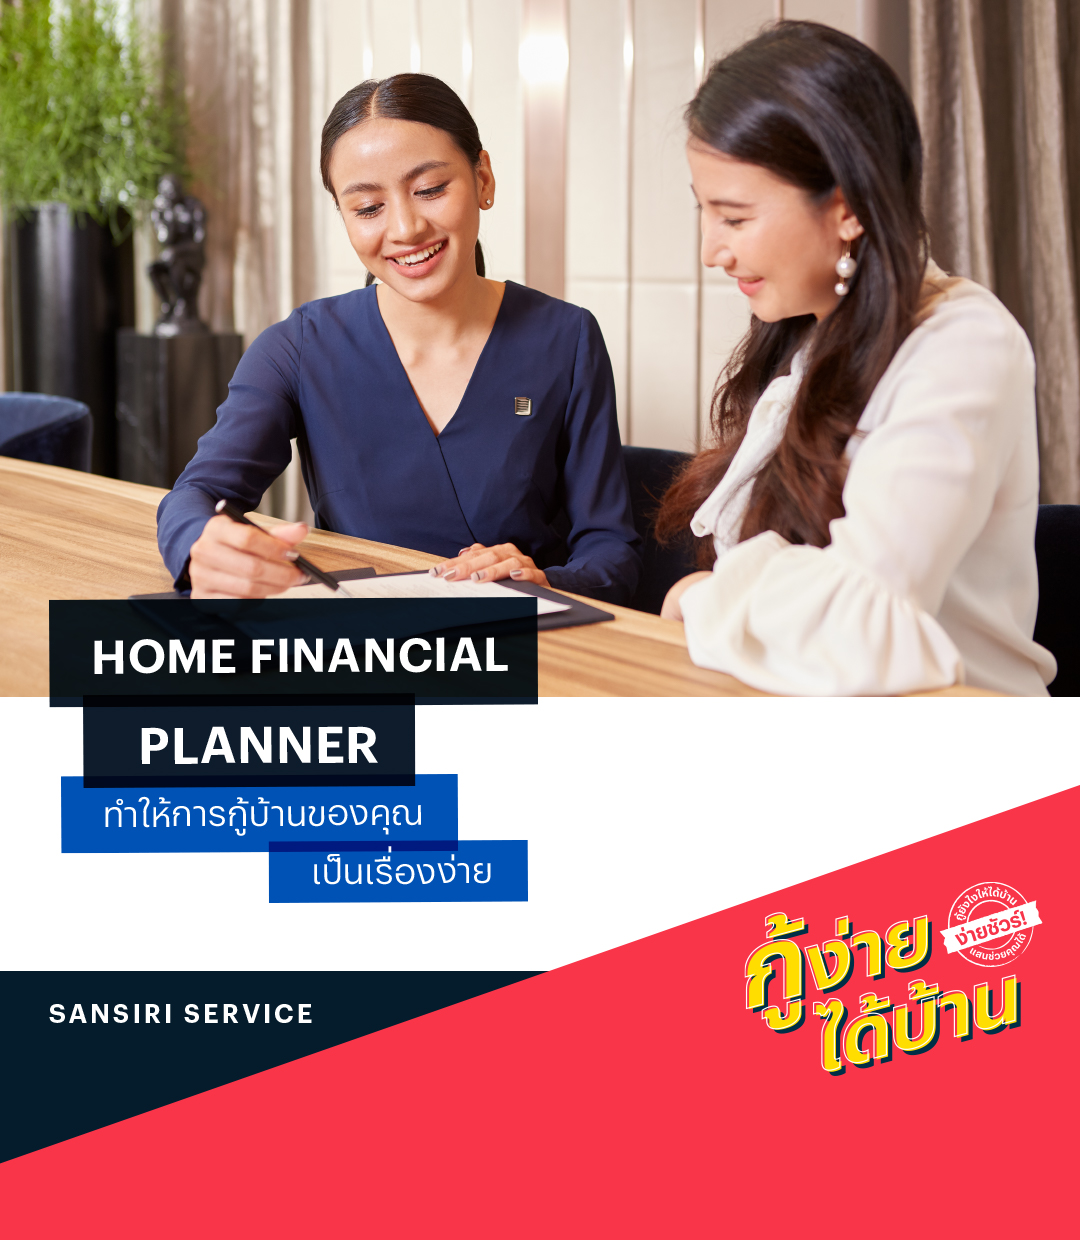 home-financial-planner